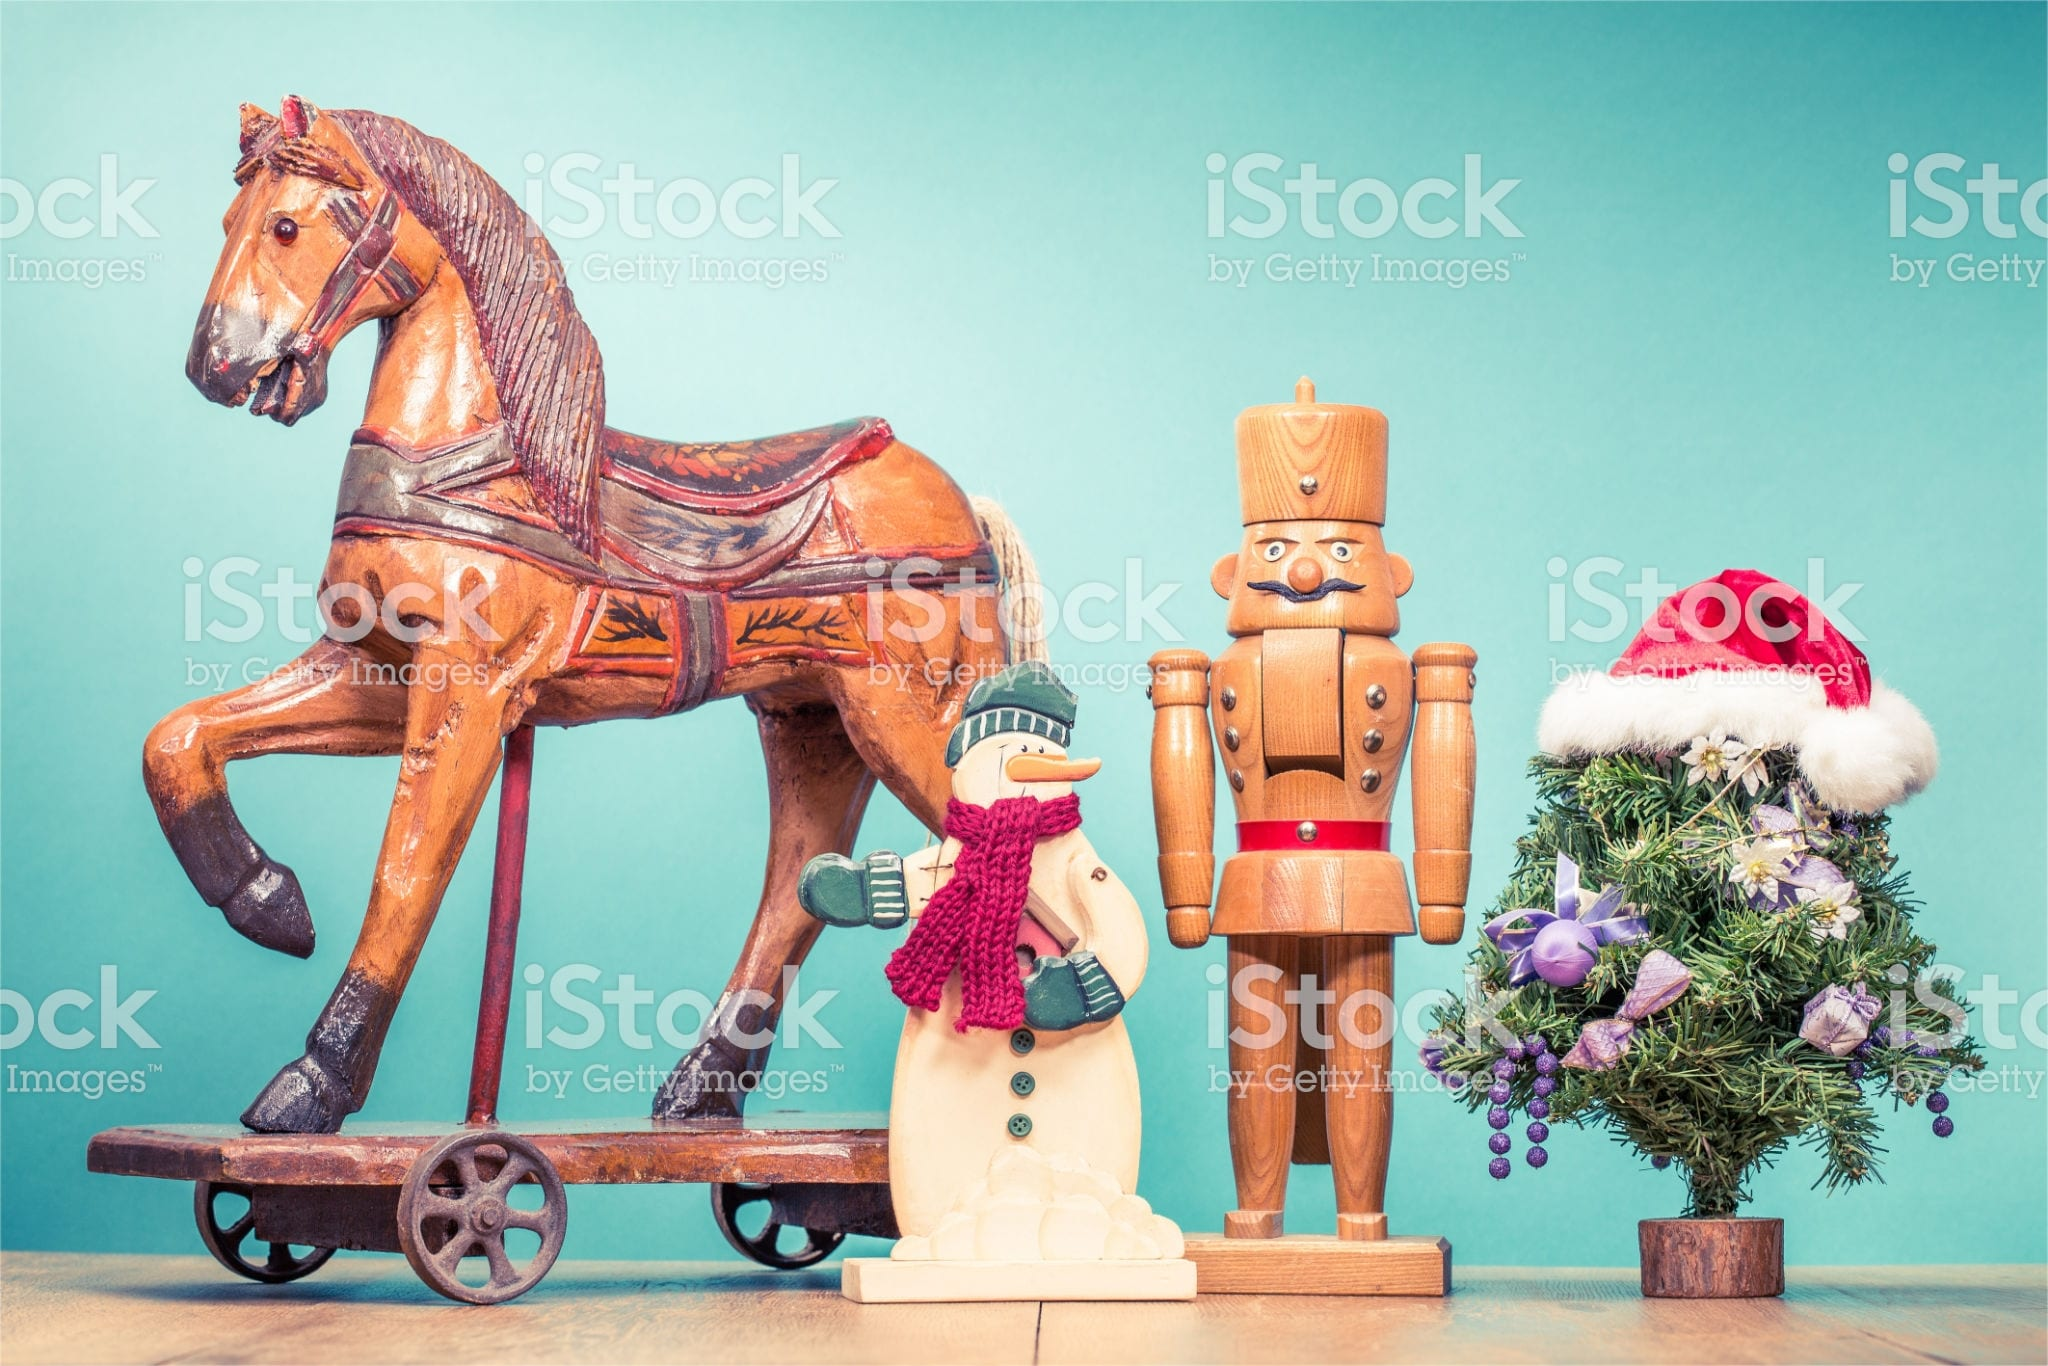 Retro antique Christmas wooden horse on wheels toy, old snowman, nutcracker and New Year tree in Santa's hat. Holiday greeting card. Vintage style filtered photo